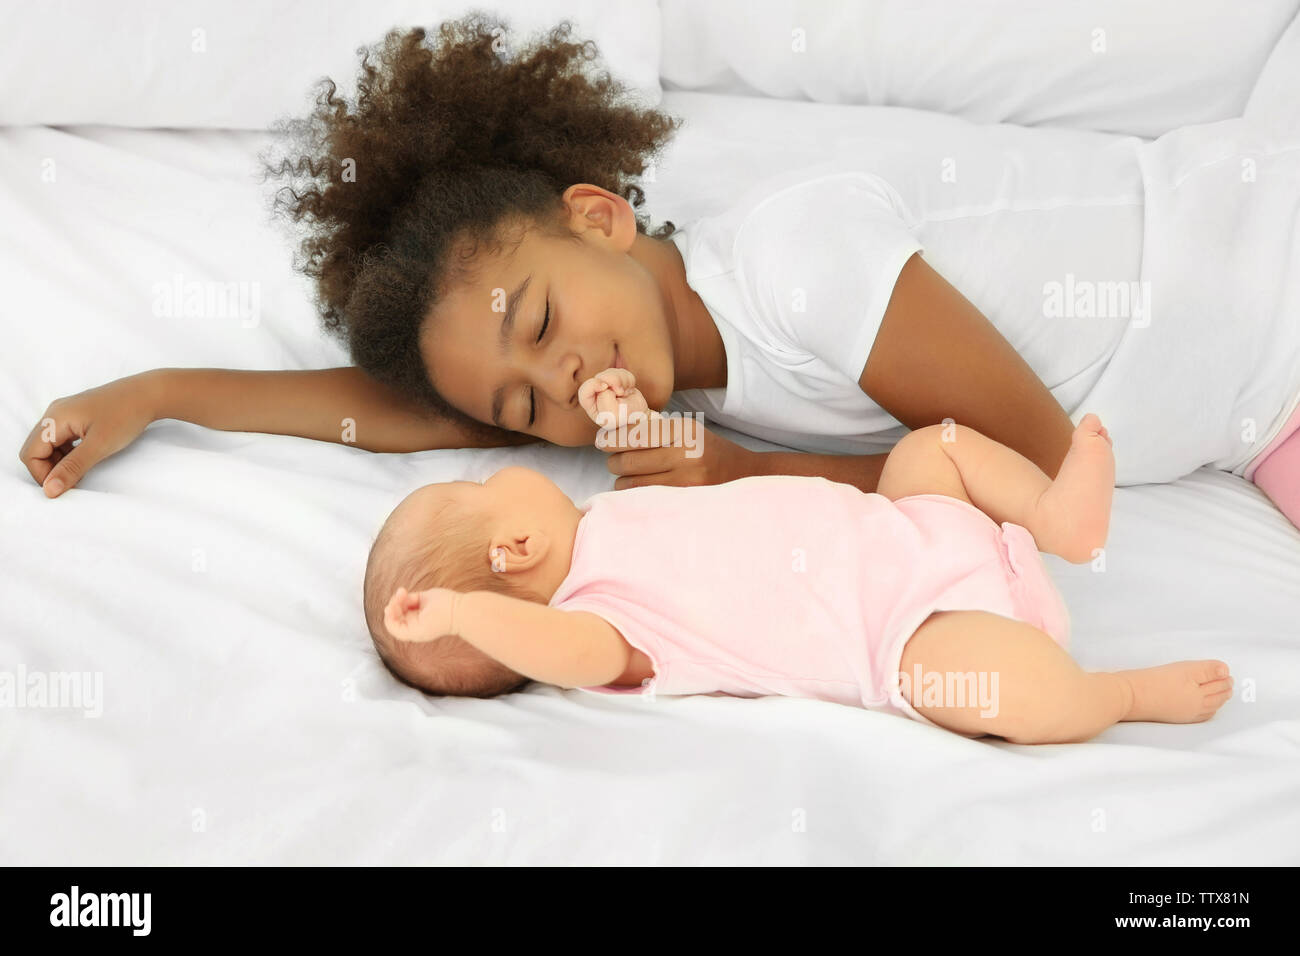 Cute baby and elder sister on bed - Stock Image